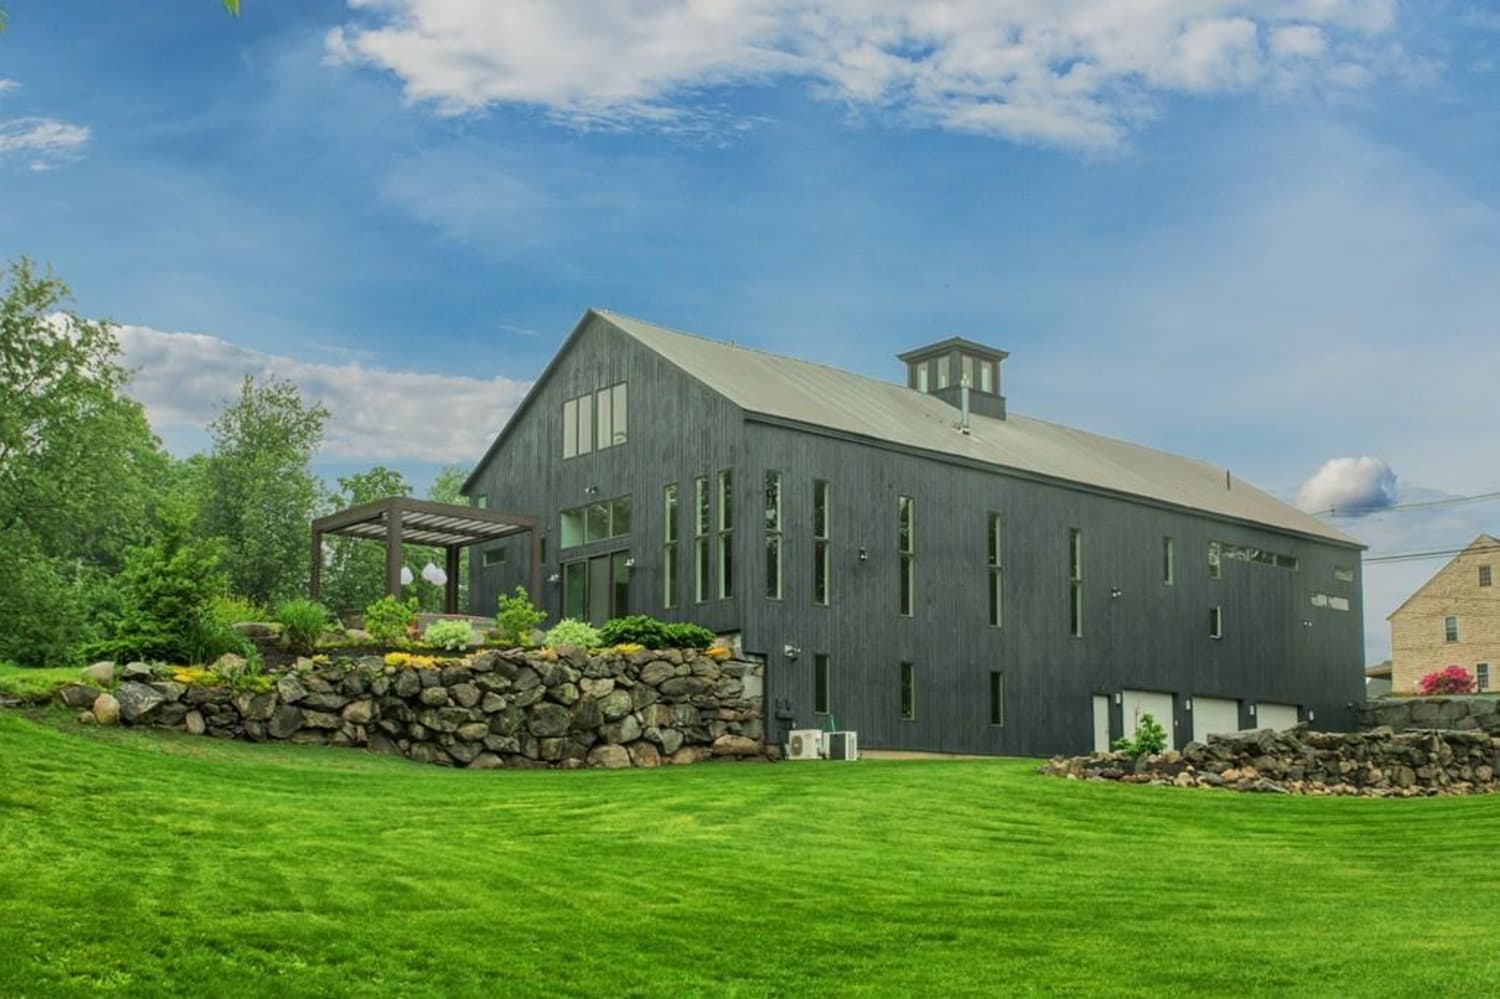 No Shiplap In Sight In This $925K Modern Barn Conversion